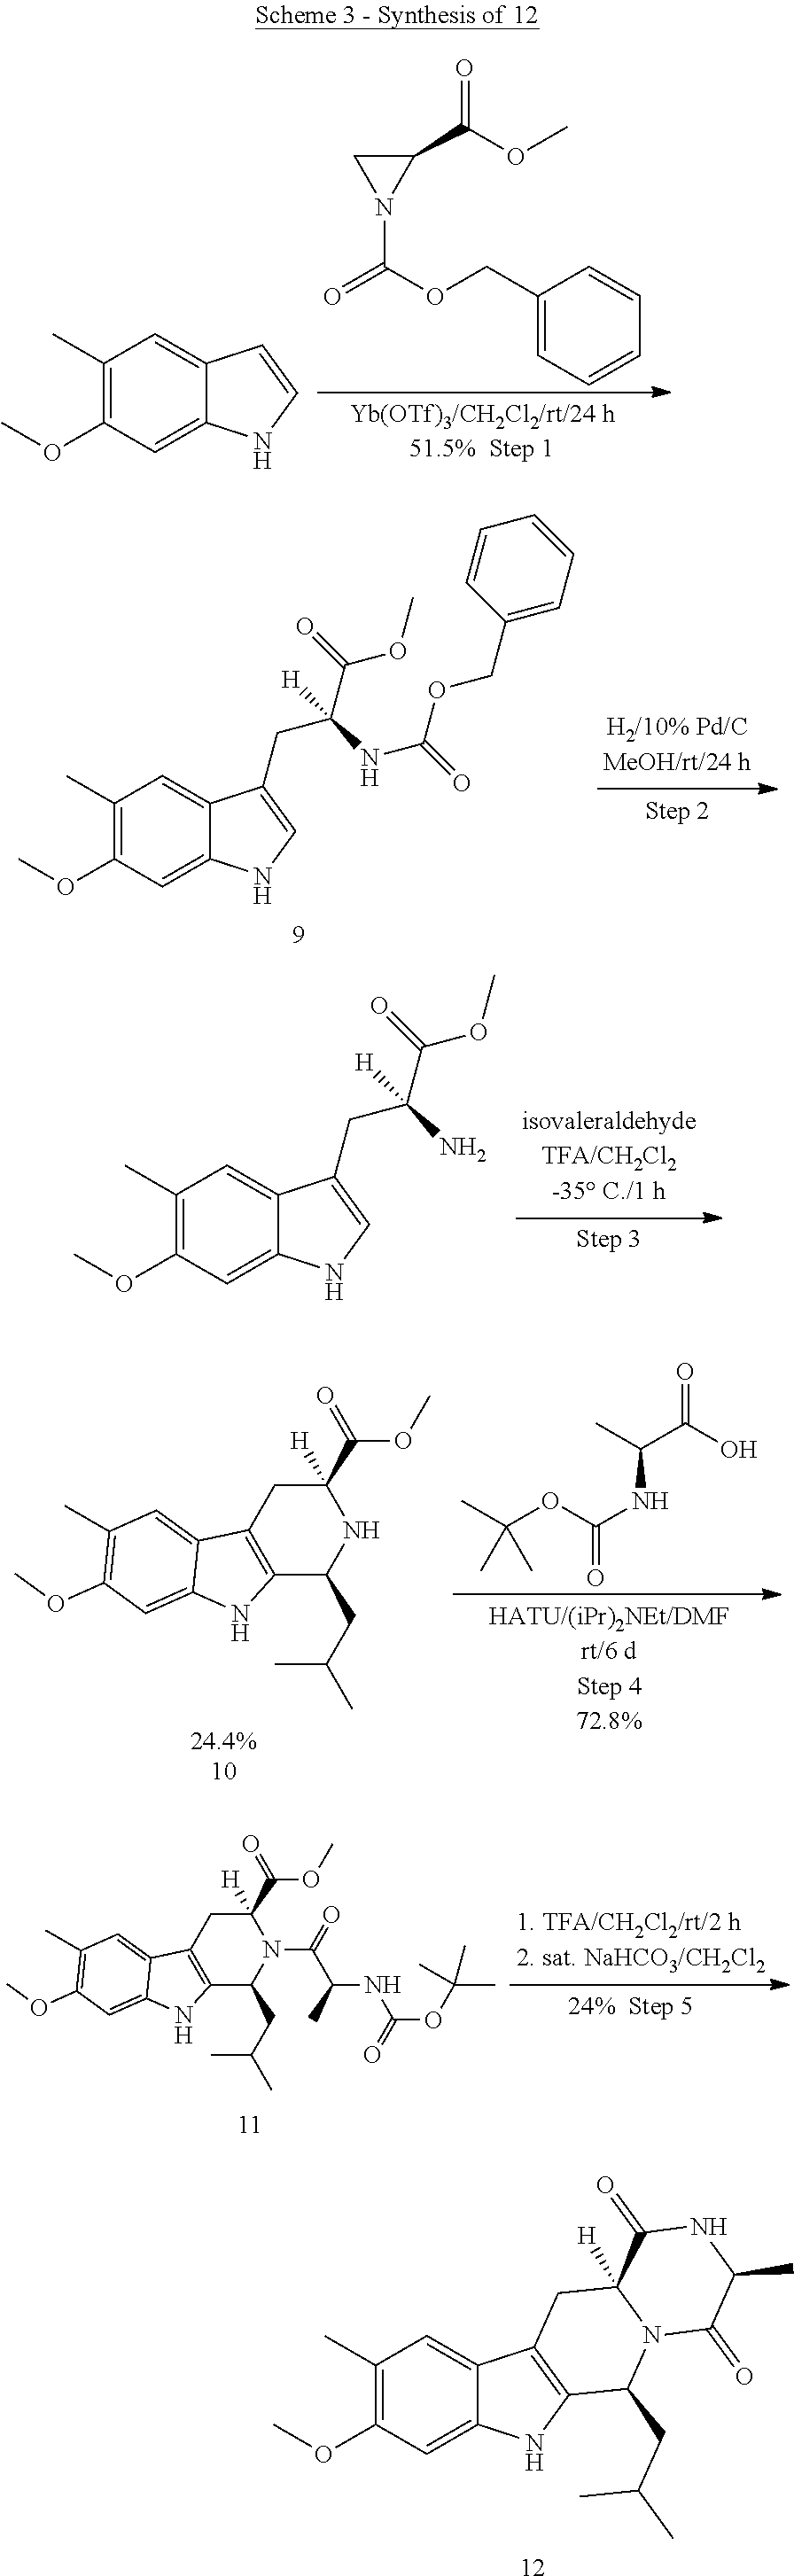 us9695174b2 inhibitor of breast cancer resistance protein bcrp 7.3 IPR Valve Location figure us09695174 20170704 c00037